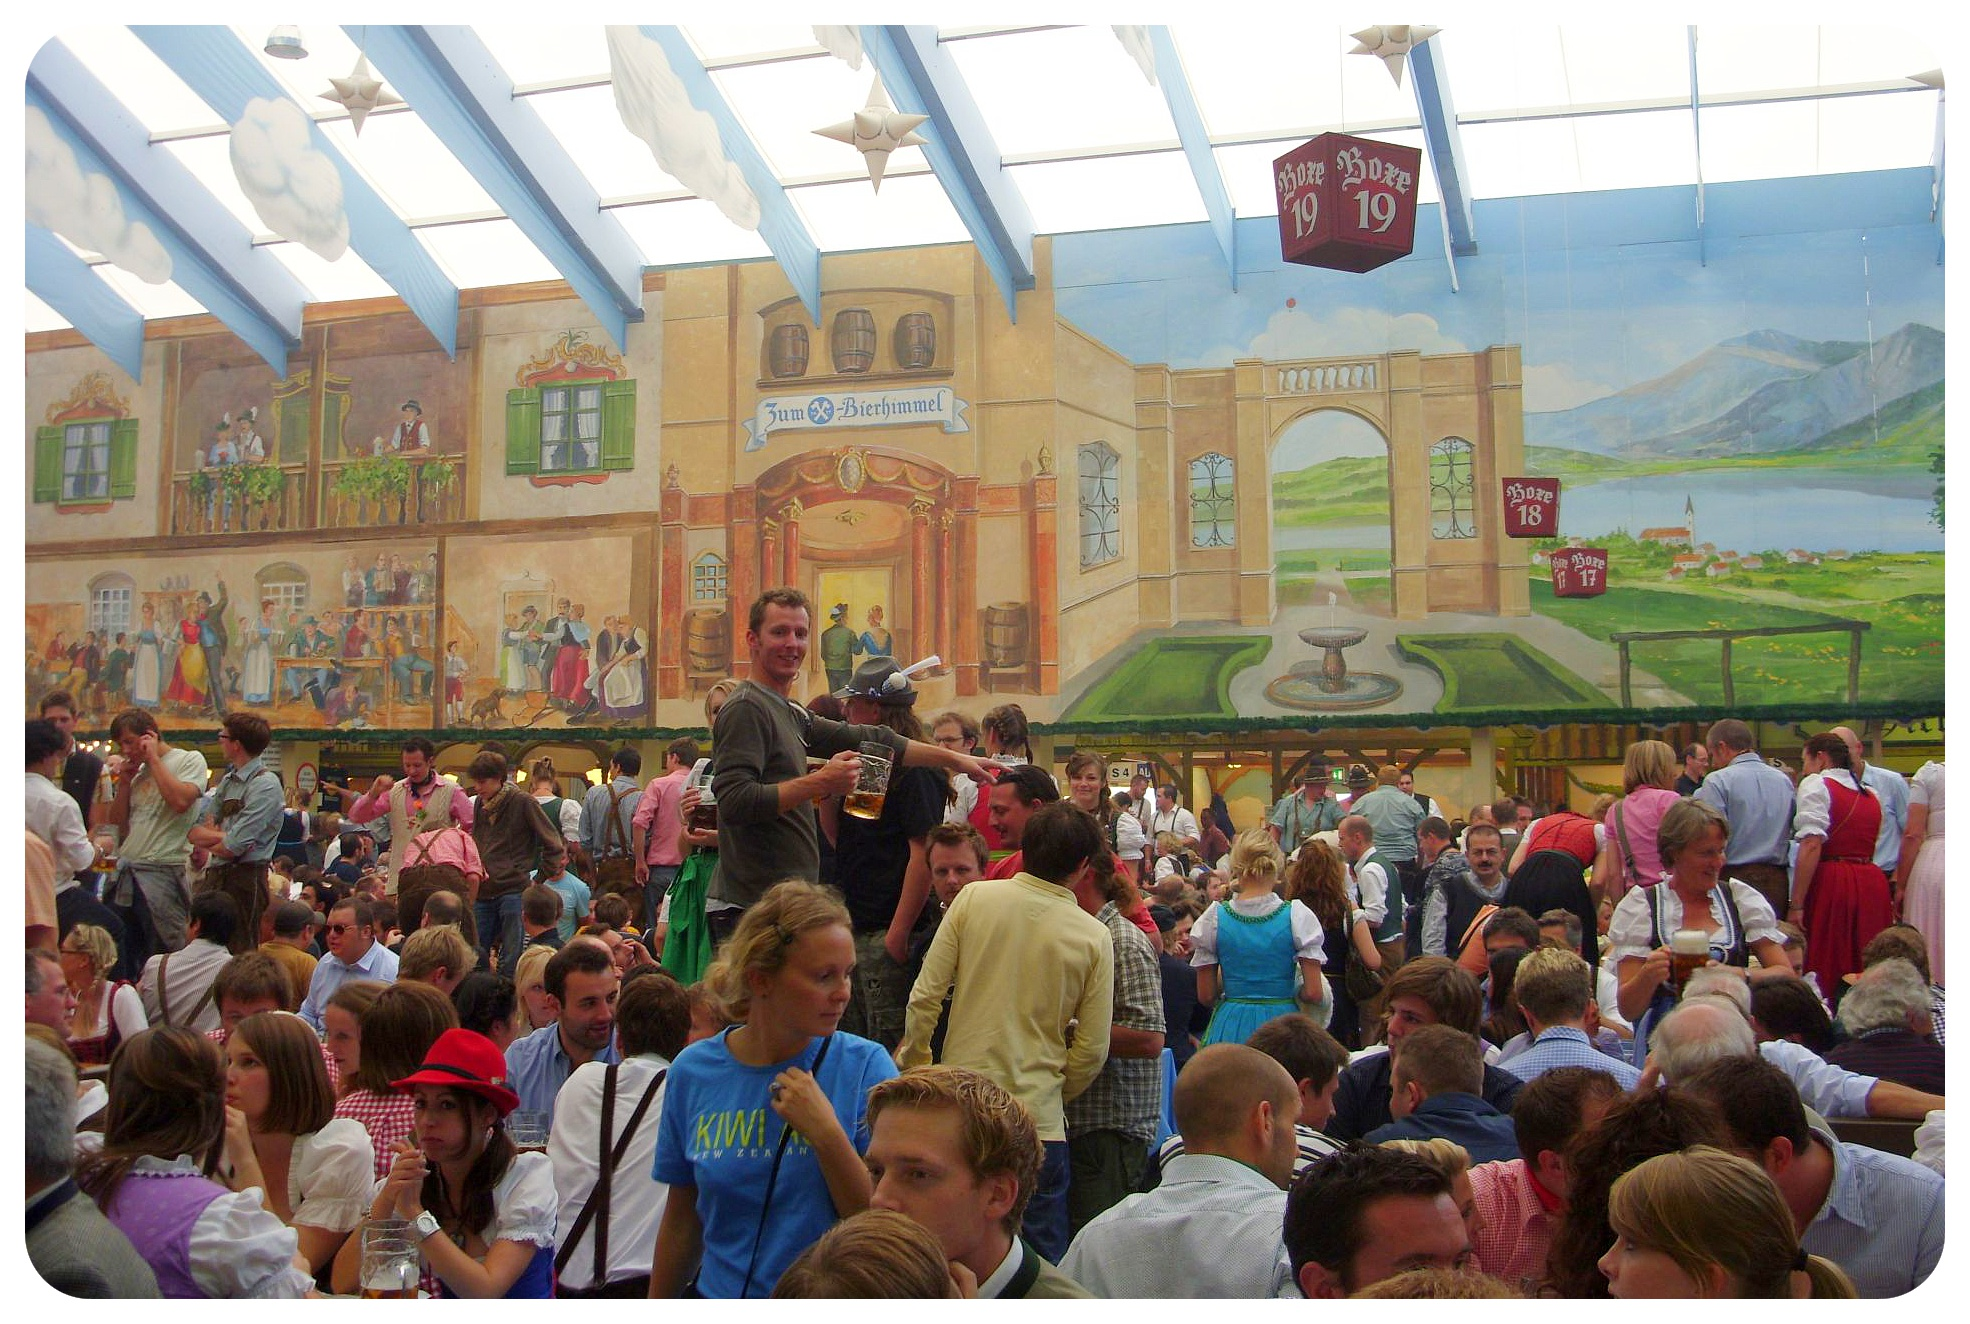 oktoberfest tent in munich